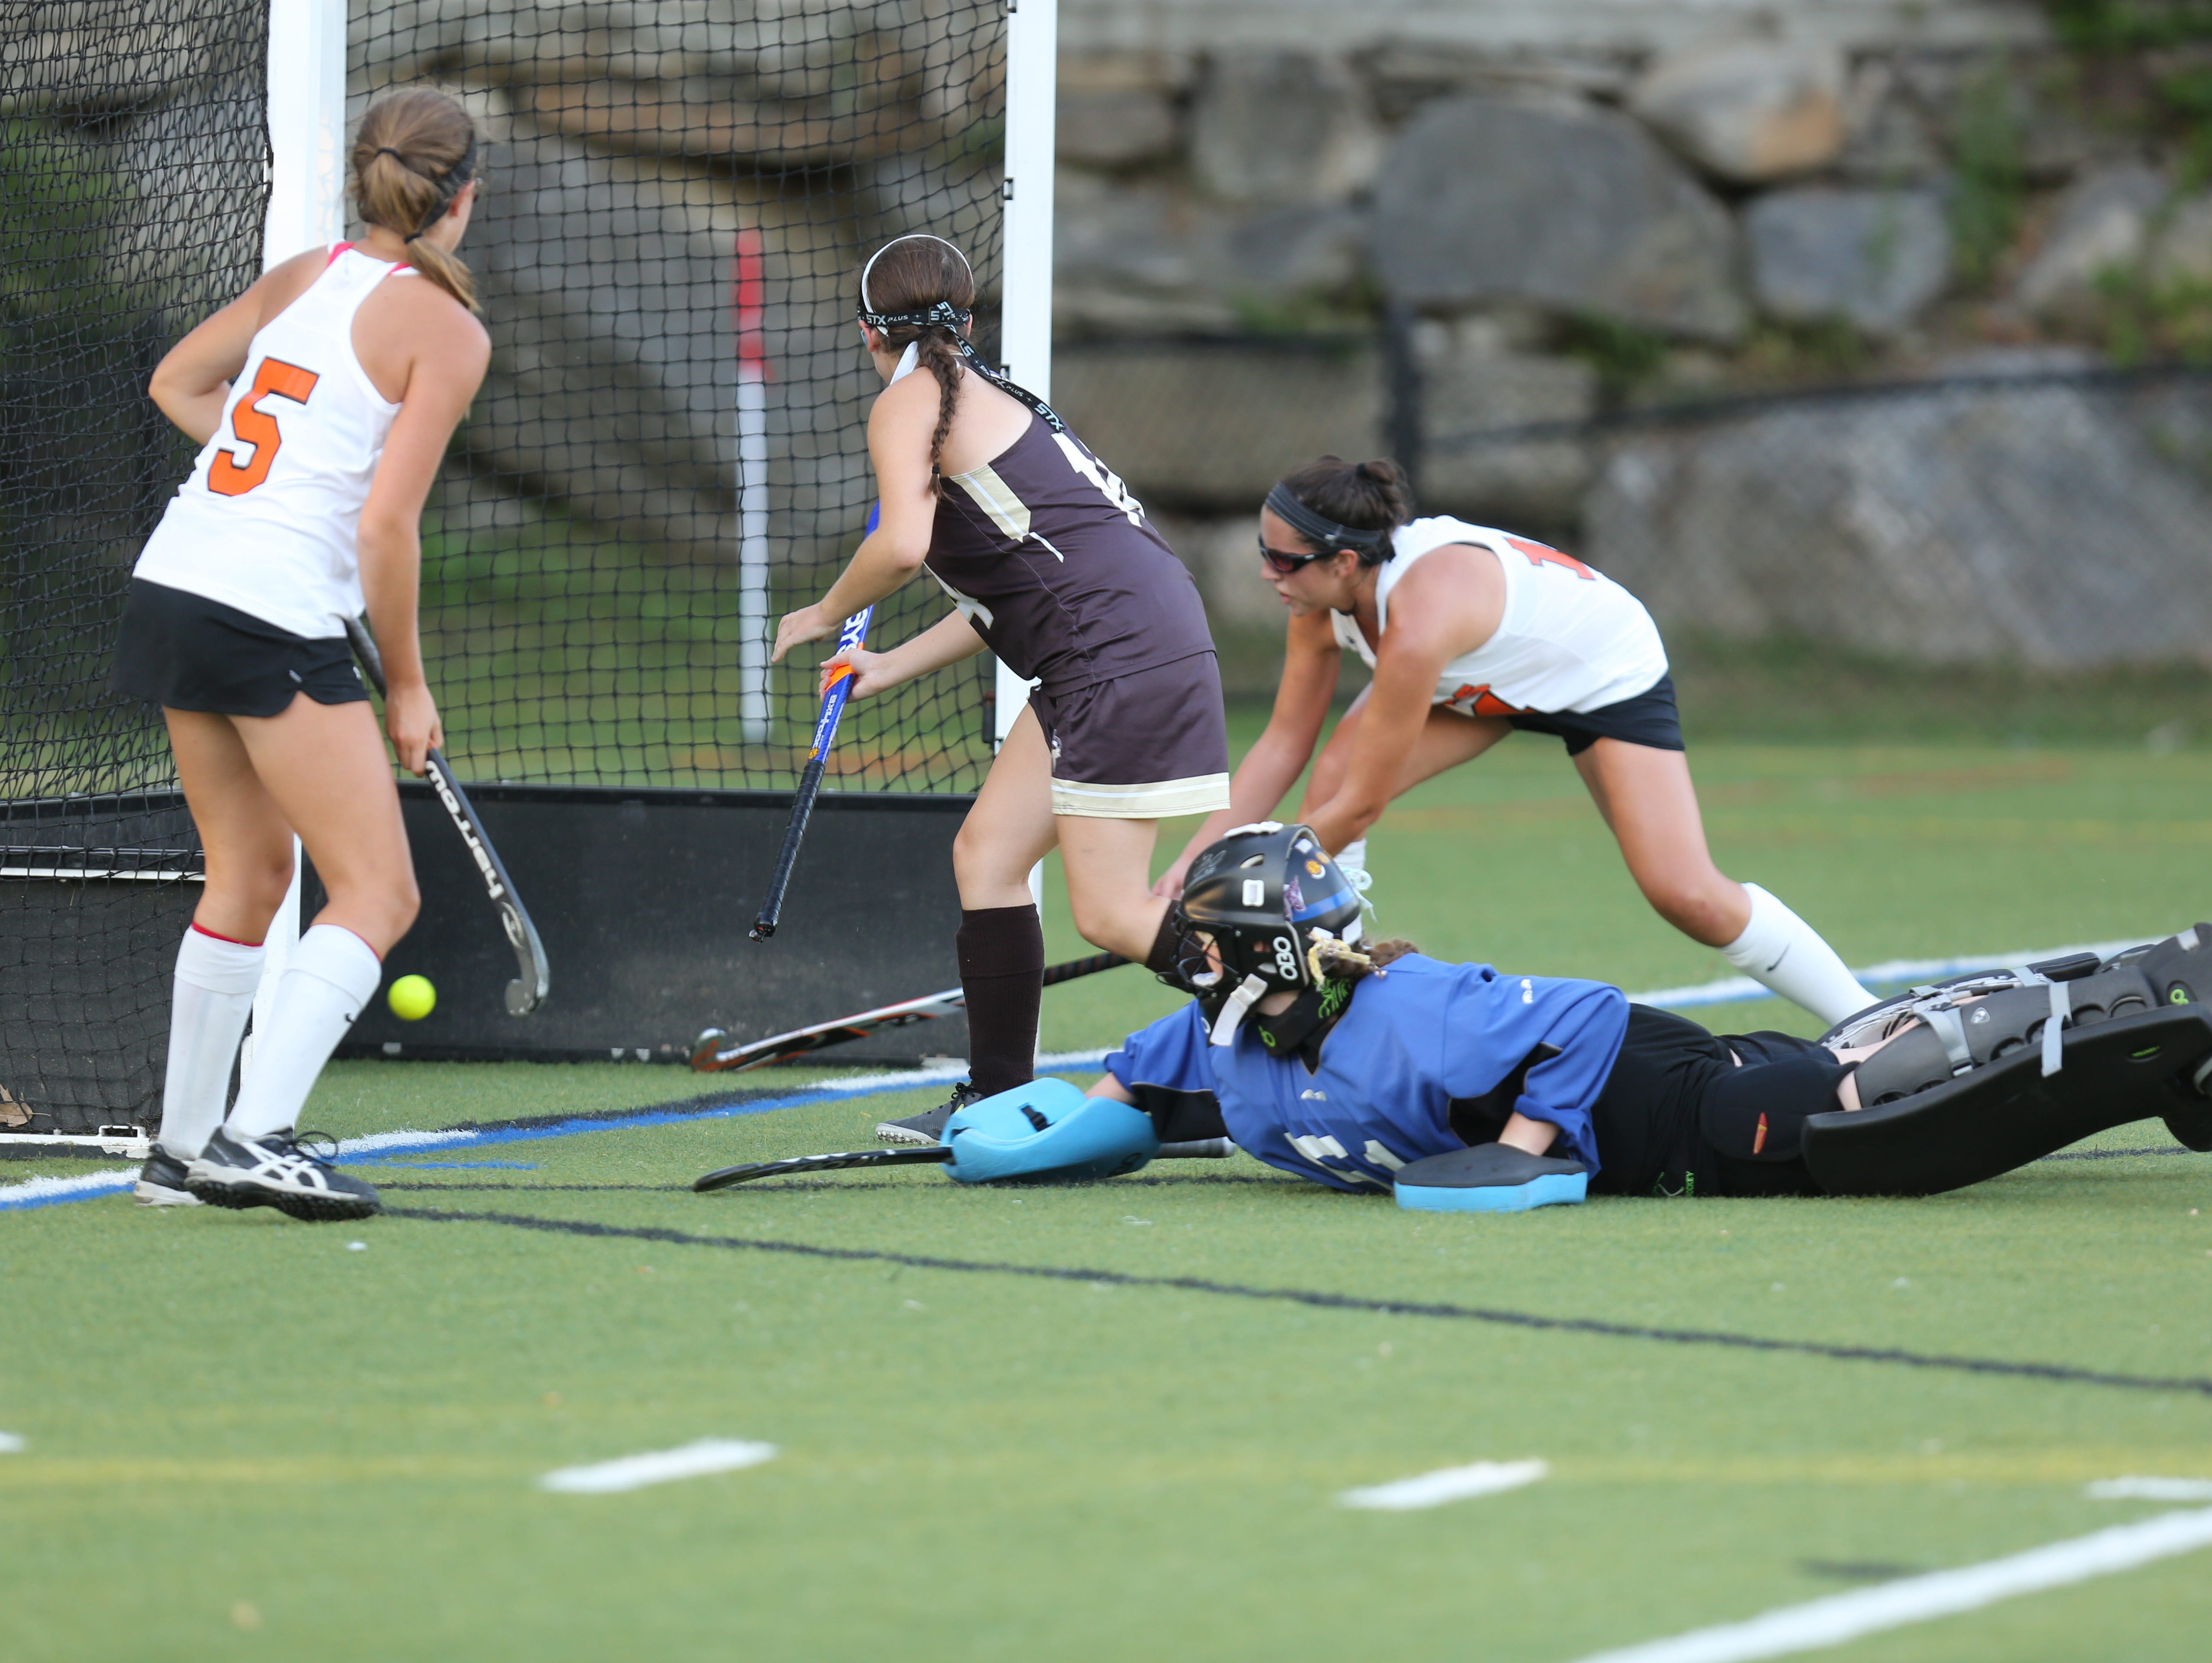 Mamaroneck's Paige Danehy (17) scores during girls field hockey game at Mamaroneck High School on Sept. 27, 2016.